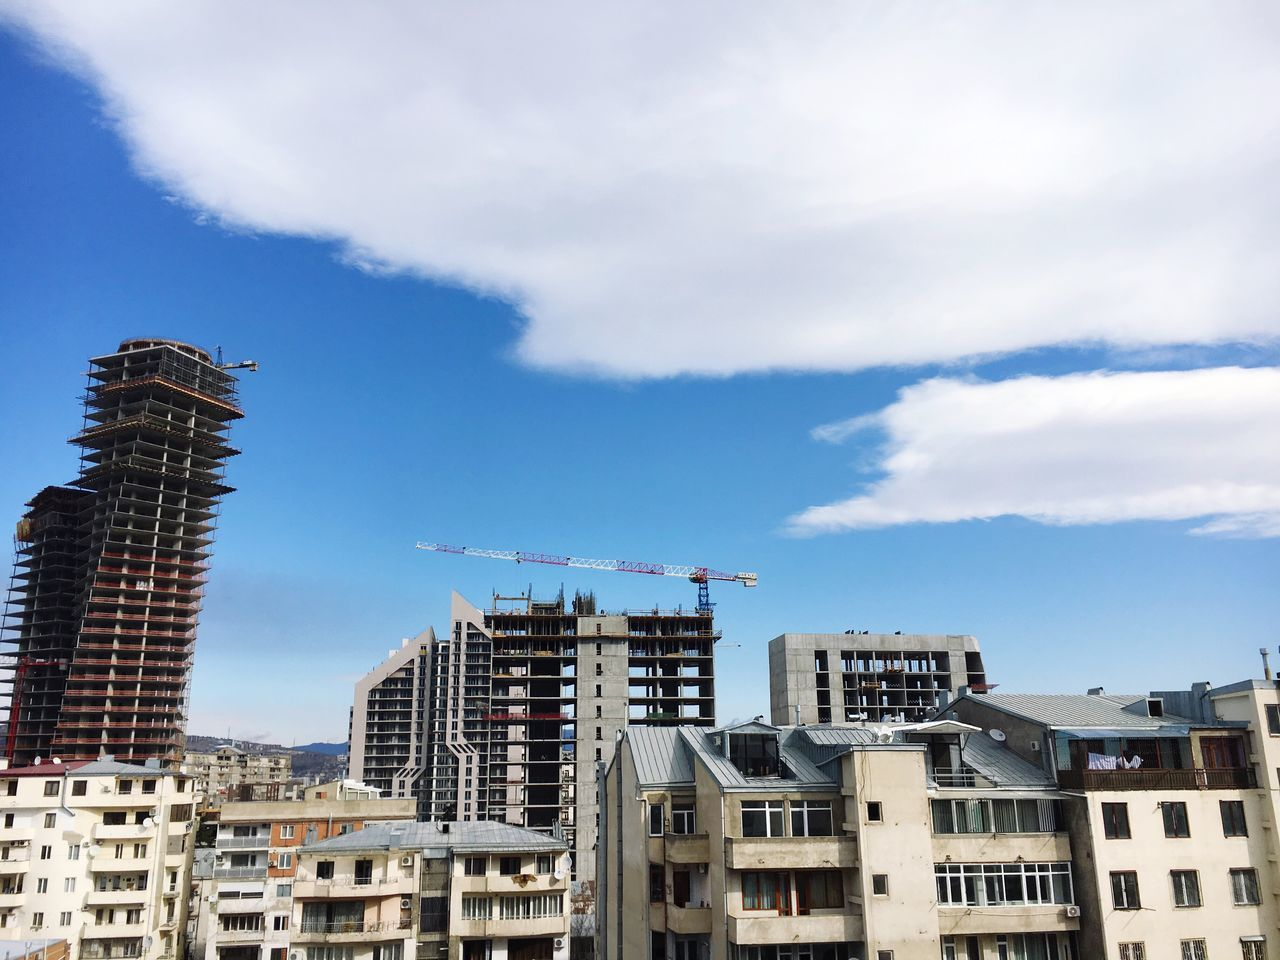 Construction in progress.. 🏢🏢🏢🏗🛠 Building Exterior Architecture Built Structure City Sky No People Cloud - Sky Outdoors Day Skyscraper Cityscape Old And New Old And New Architecture Block Of Flats Tbilisi Georgia Construction Site Construction Crane Balconies Windows Clouds And Sky Balcony View